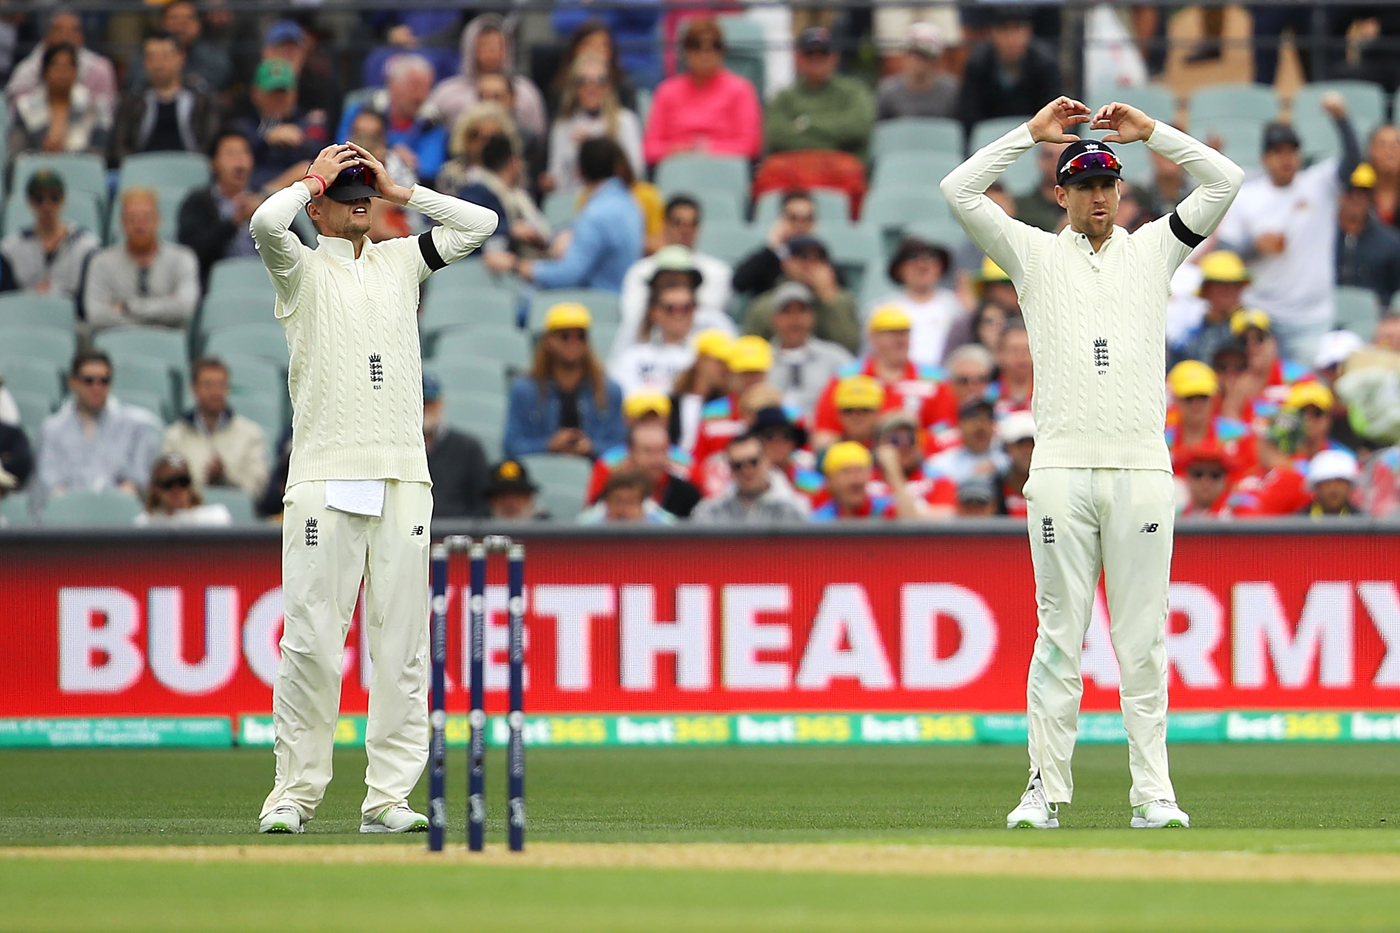 The Ashes 2017/18: Frustrating That Pretty Silly Incident Puts An Unfair Question Mark Over Our Culture, Says James Anderson